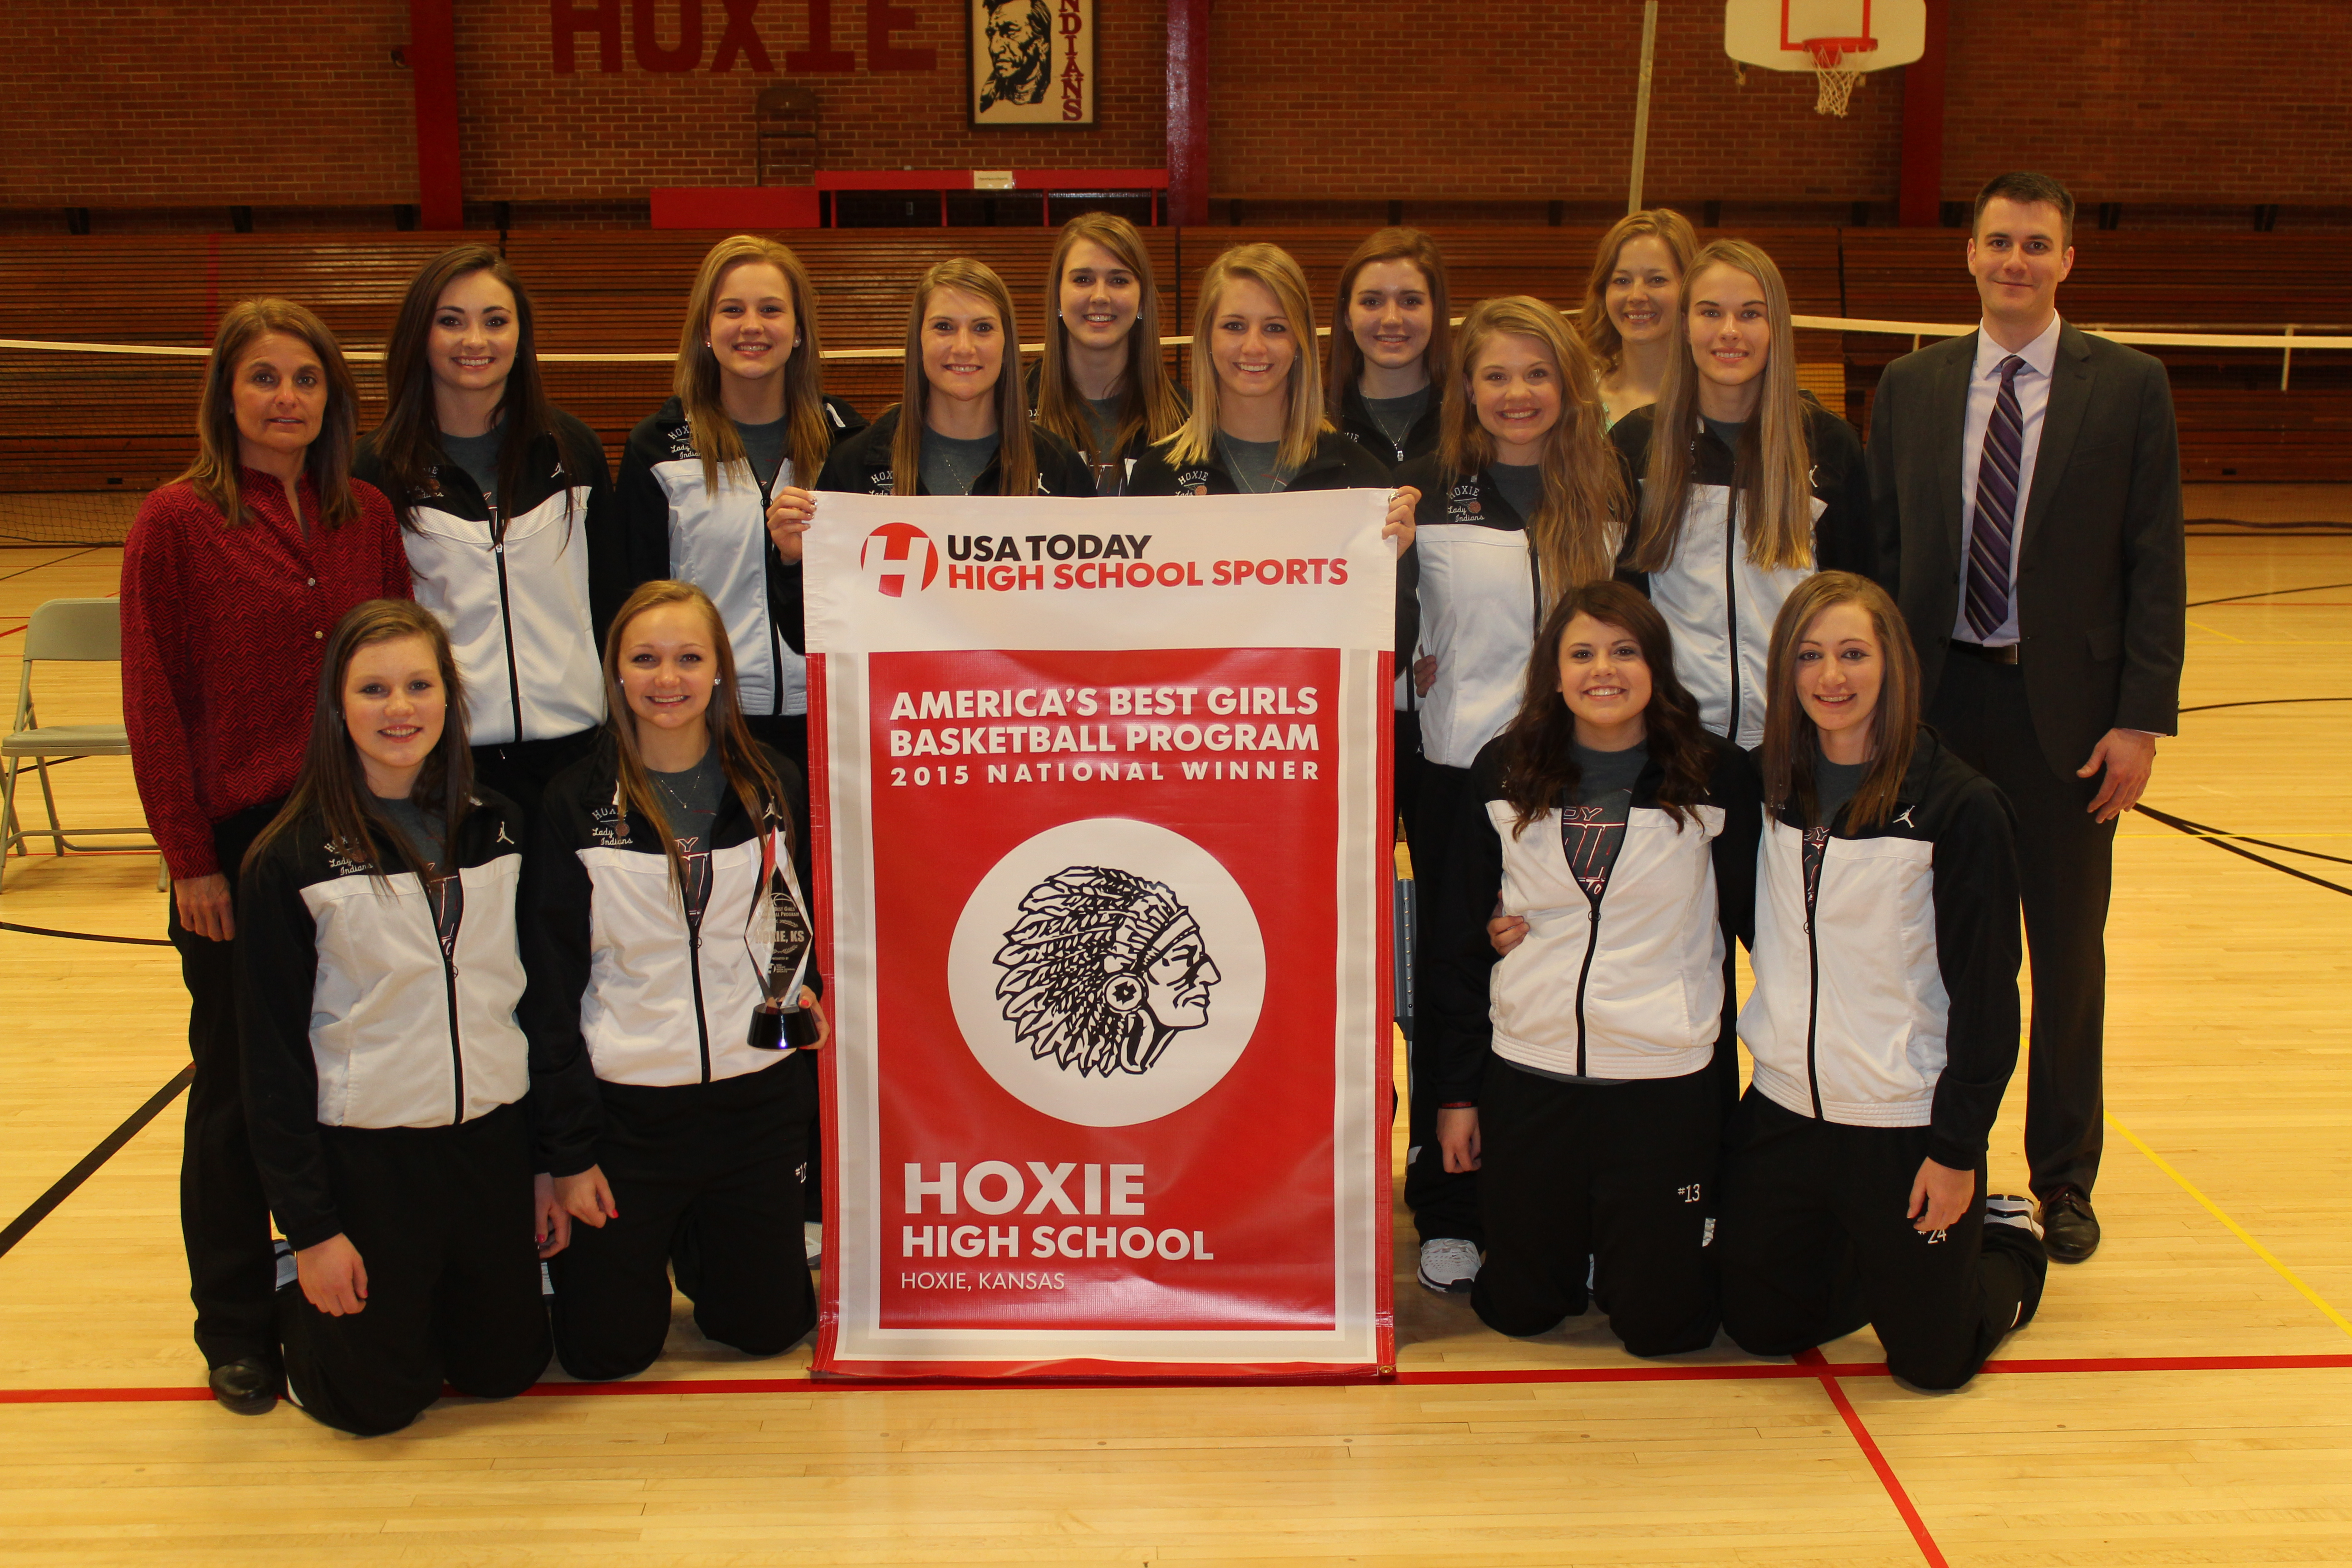 The Hoxie girls basketball team displays its banner for winning the Best Girls Basketball Program contest (Photo: Hoxie High School)